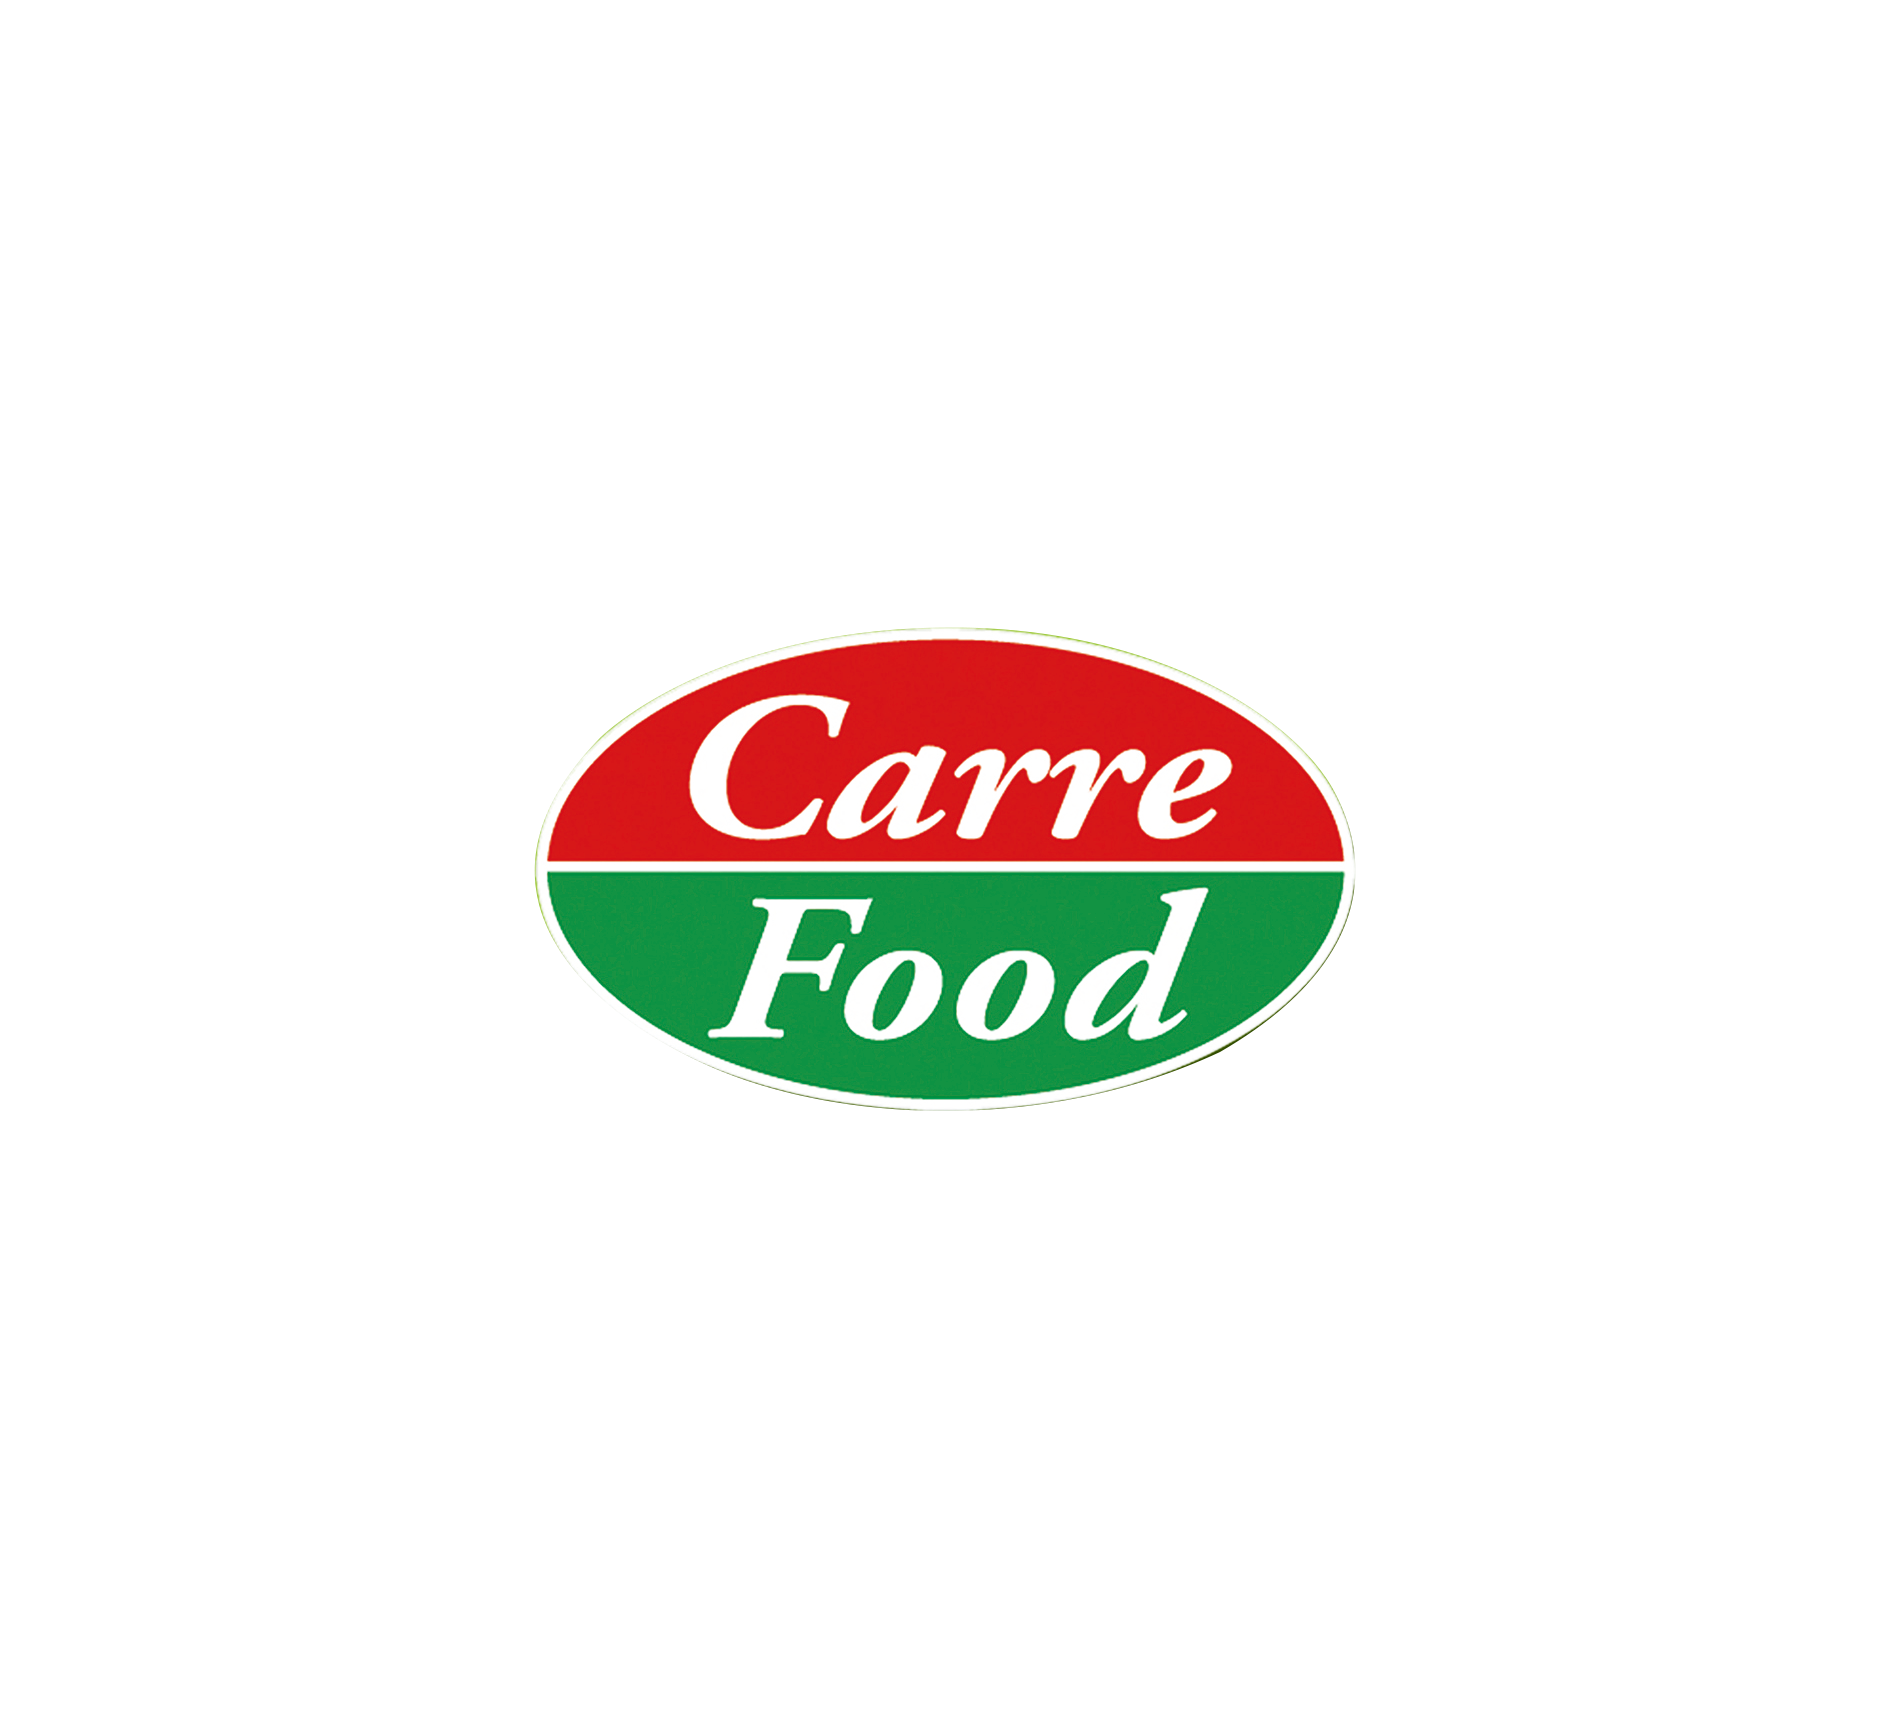 FUJIAN CARREFOOD INDUSTRY AND TRADE CO.,LTD